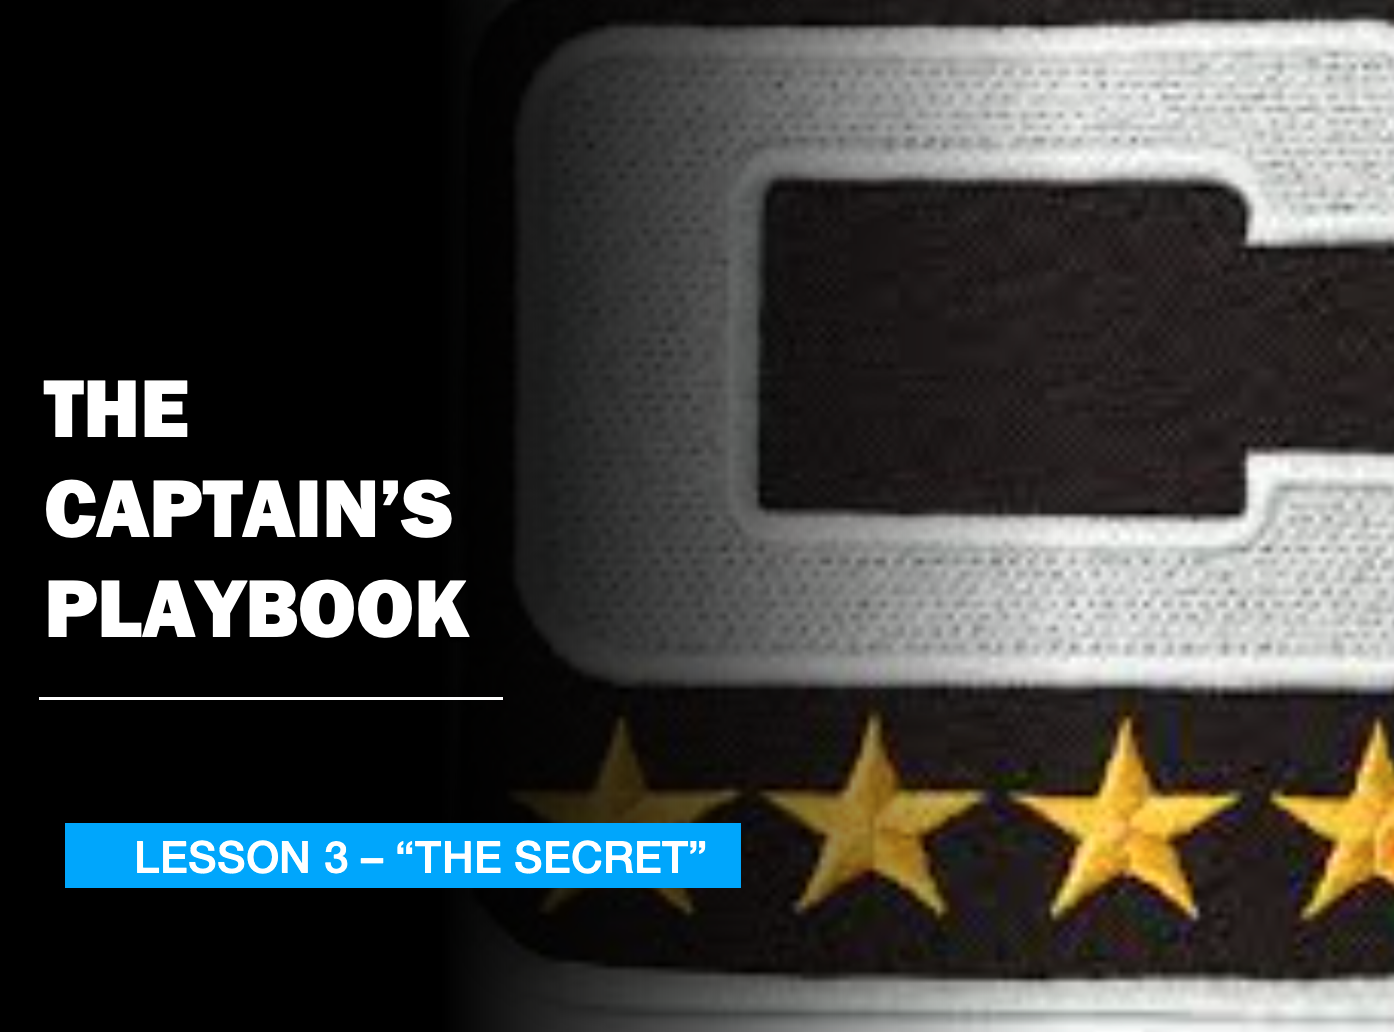 THE CAPTAIN'S PLAYBOOK - LESSON 3